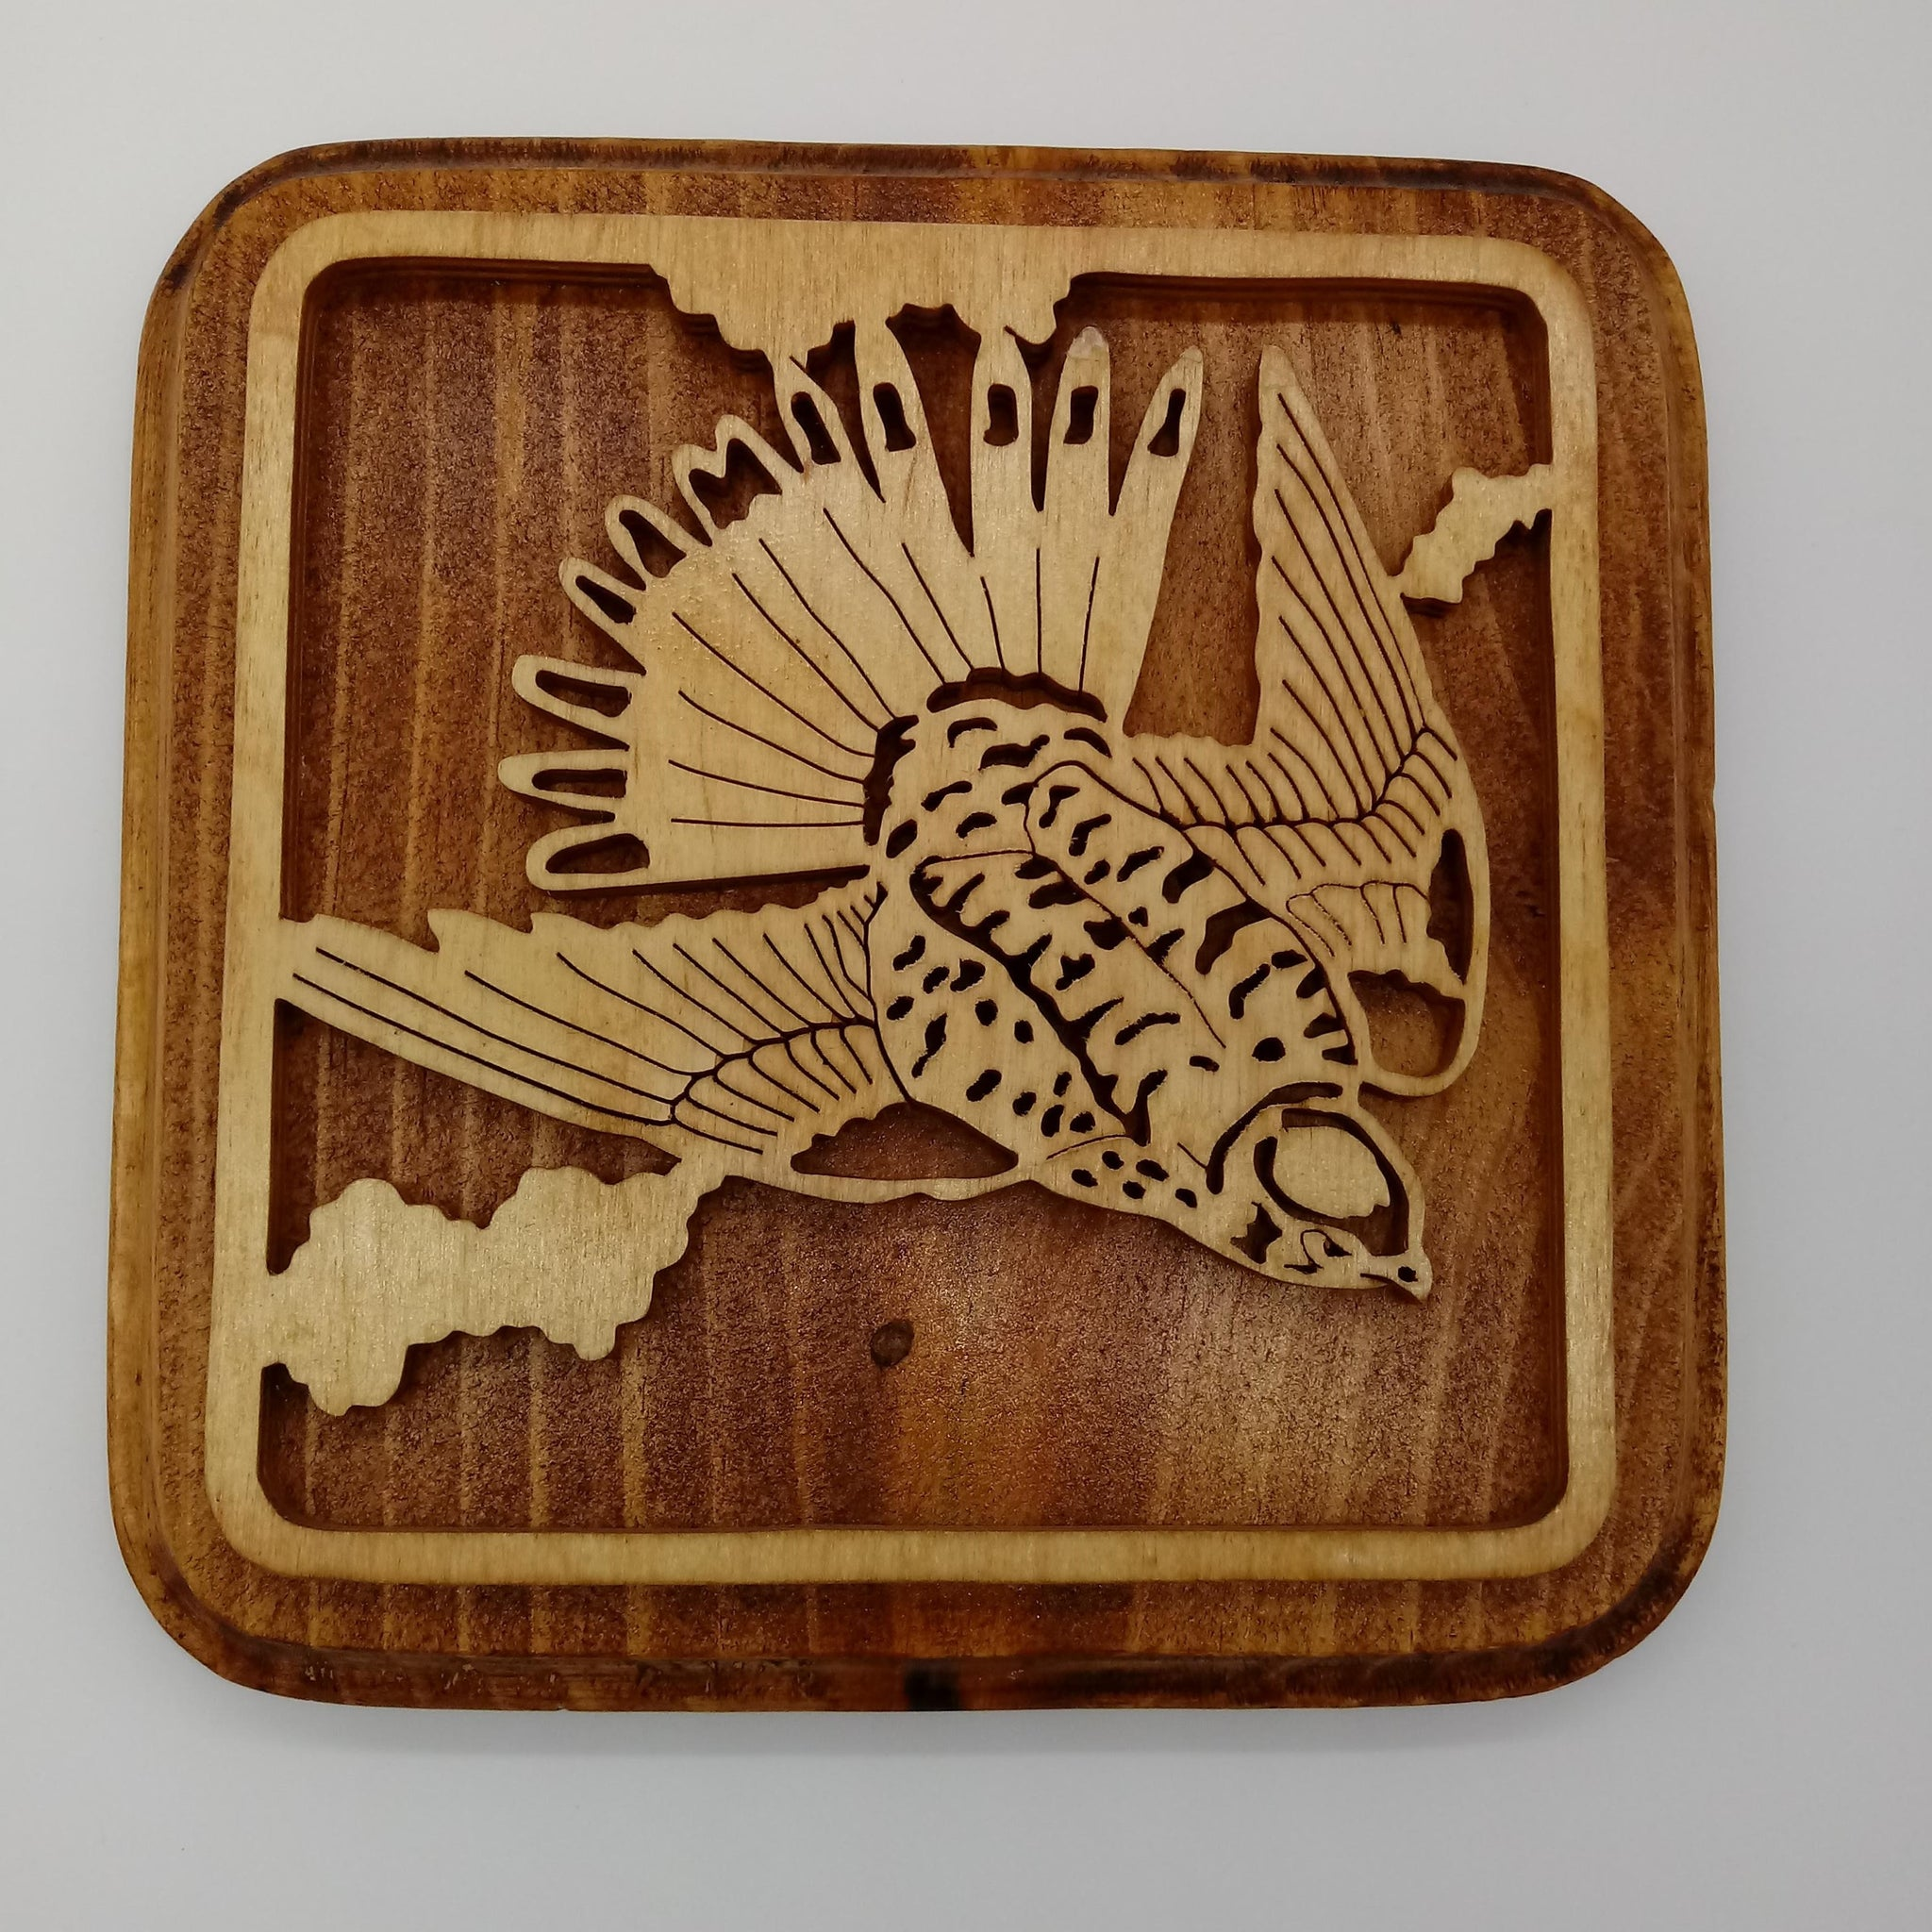 American Sparrow Hawk Plaque - Kripp's Kreations